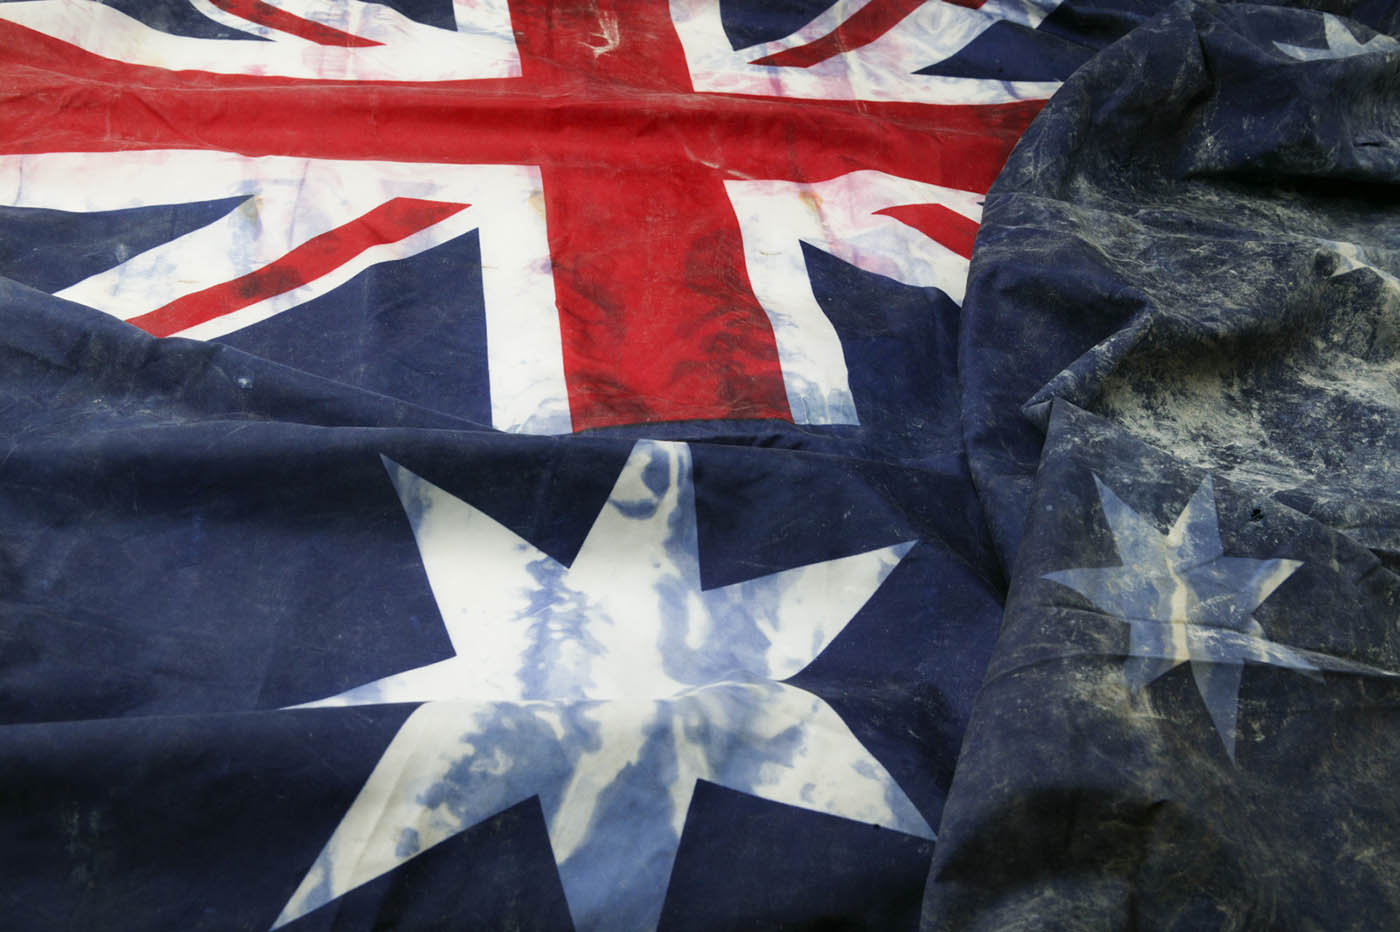 Top left section of an Australian flag with stains, tears and burns. The Union Jack is visible, along with the large seven-pointed star. The section bearing the Southern Cross is quite crumpled.